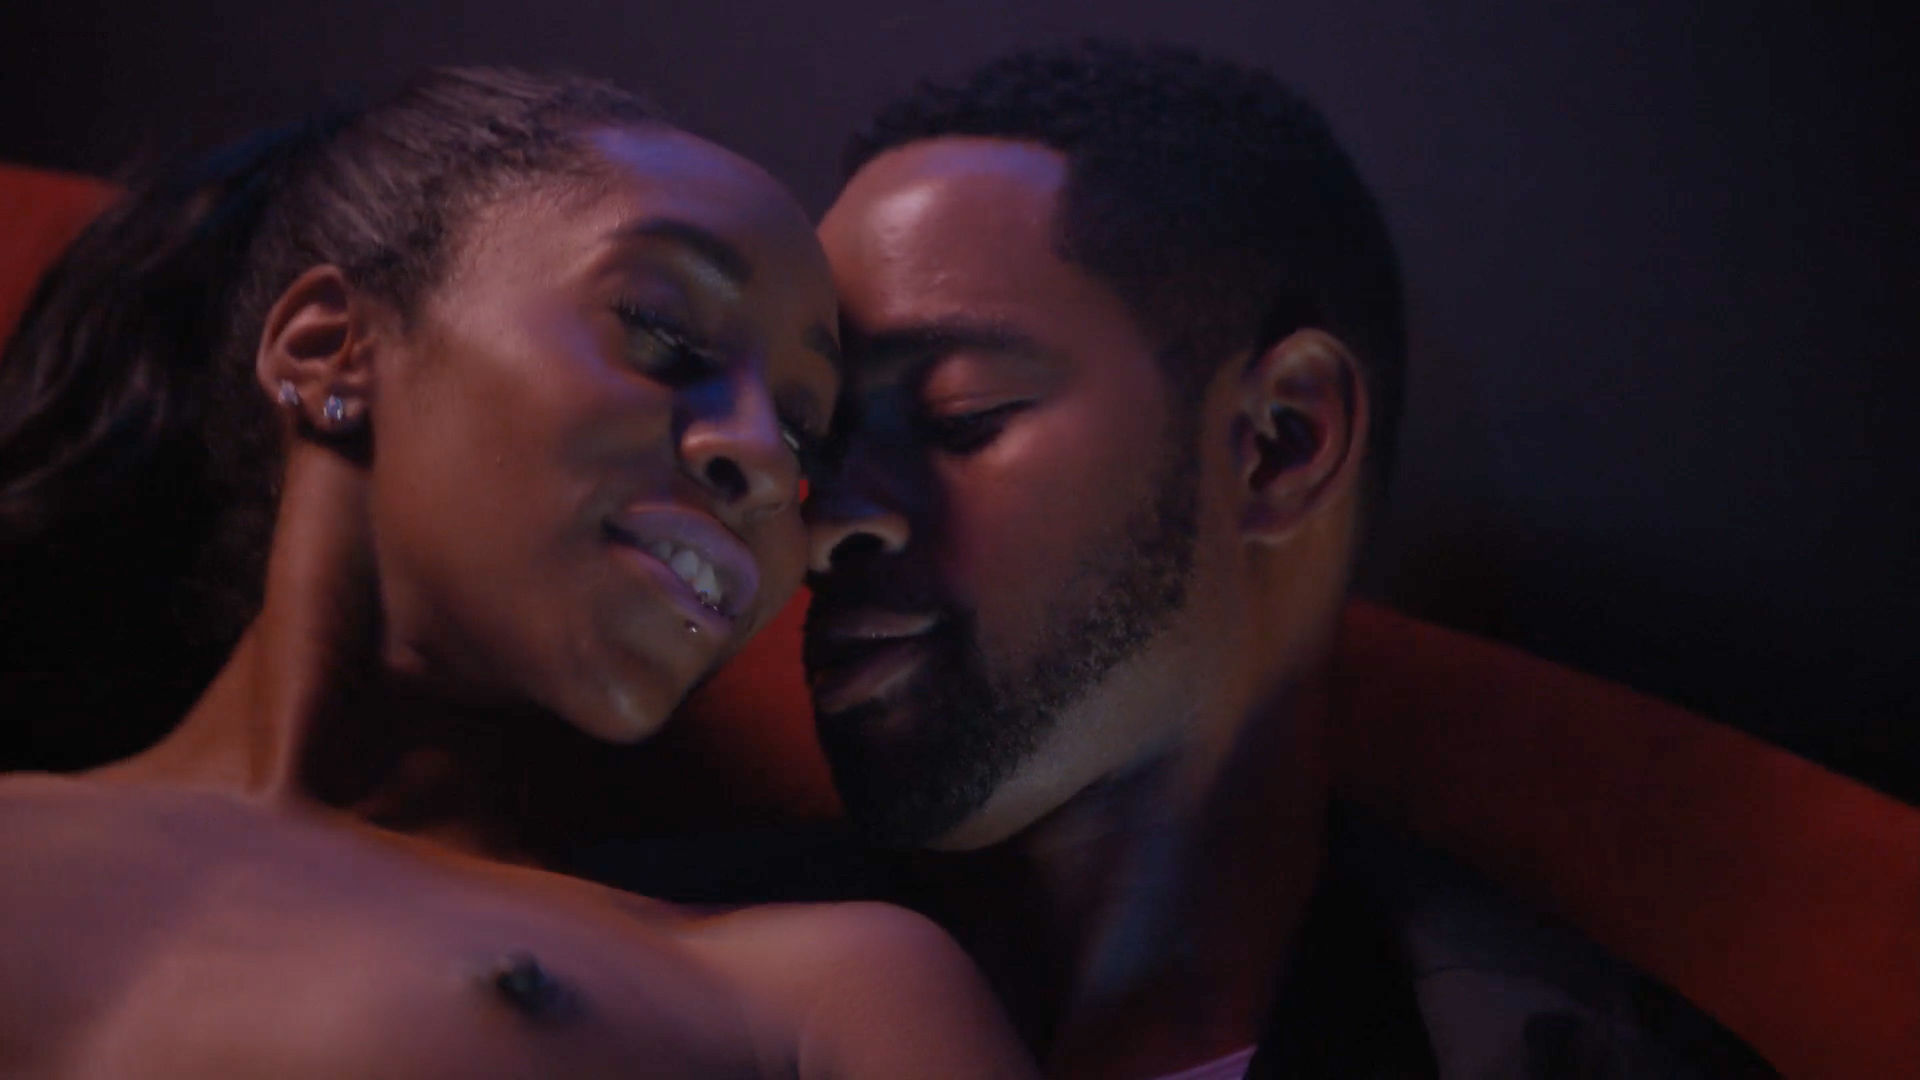 Dominique Perry nude sex and Nikki Vanderdyz nude - Insecure (2016) s1e8 HD 1080p (1)